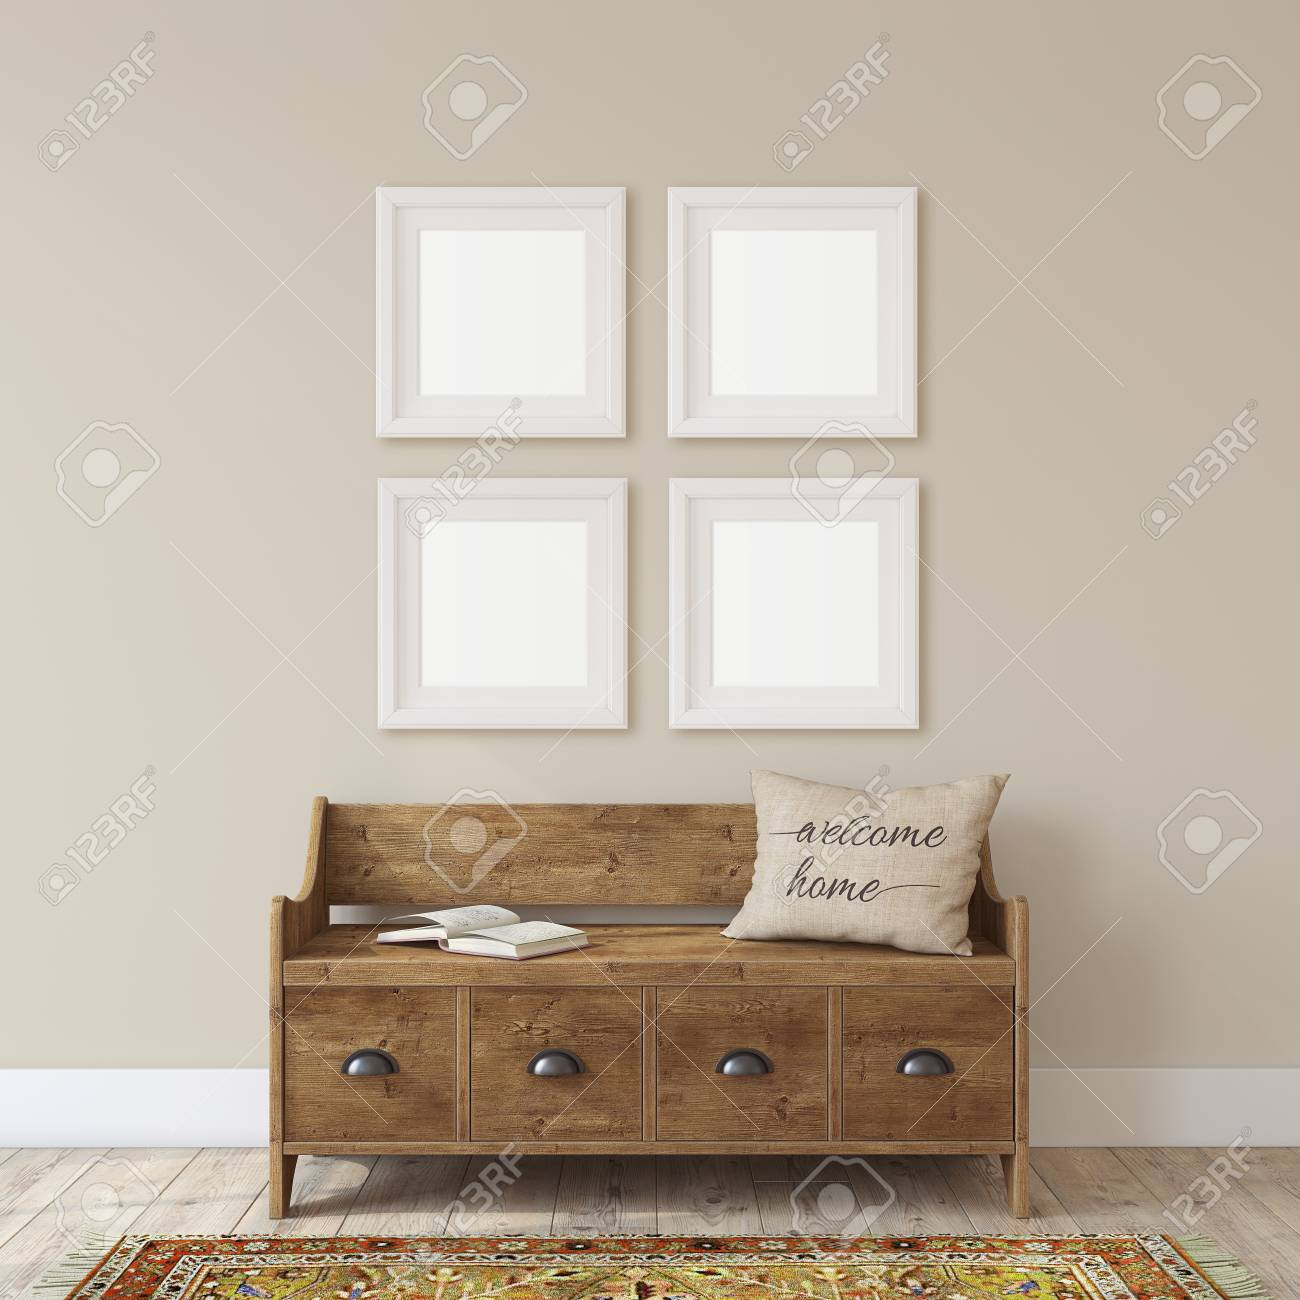 Farmhouse entryway. Wooden bench near white wall. Frame mockup. Four white square frames on the wall. 3d render. - 118411821